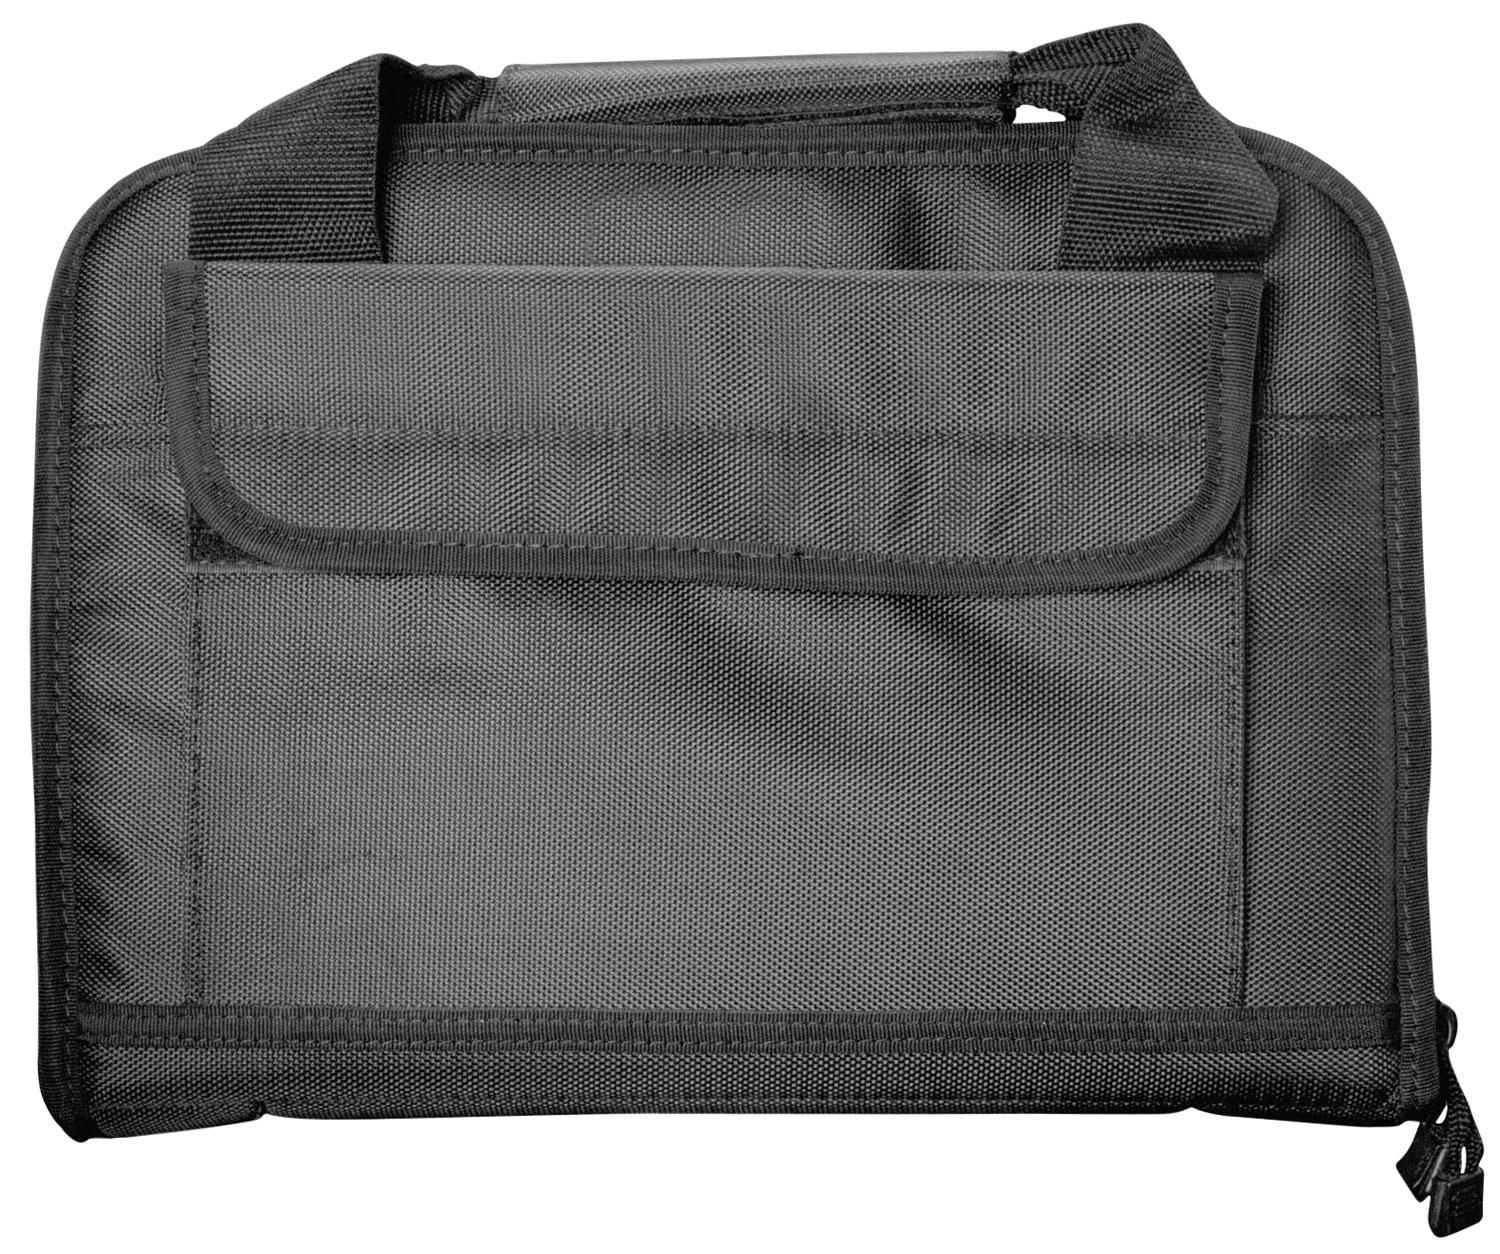 Aim Sports Tgadpp Discreet Pistol Bag 1680d Polyester 13.6